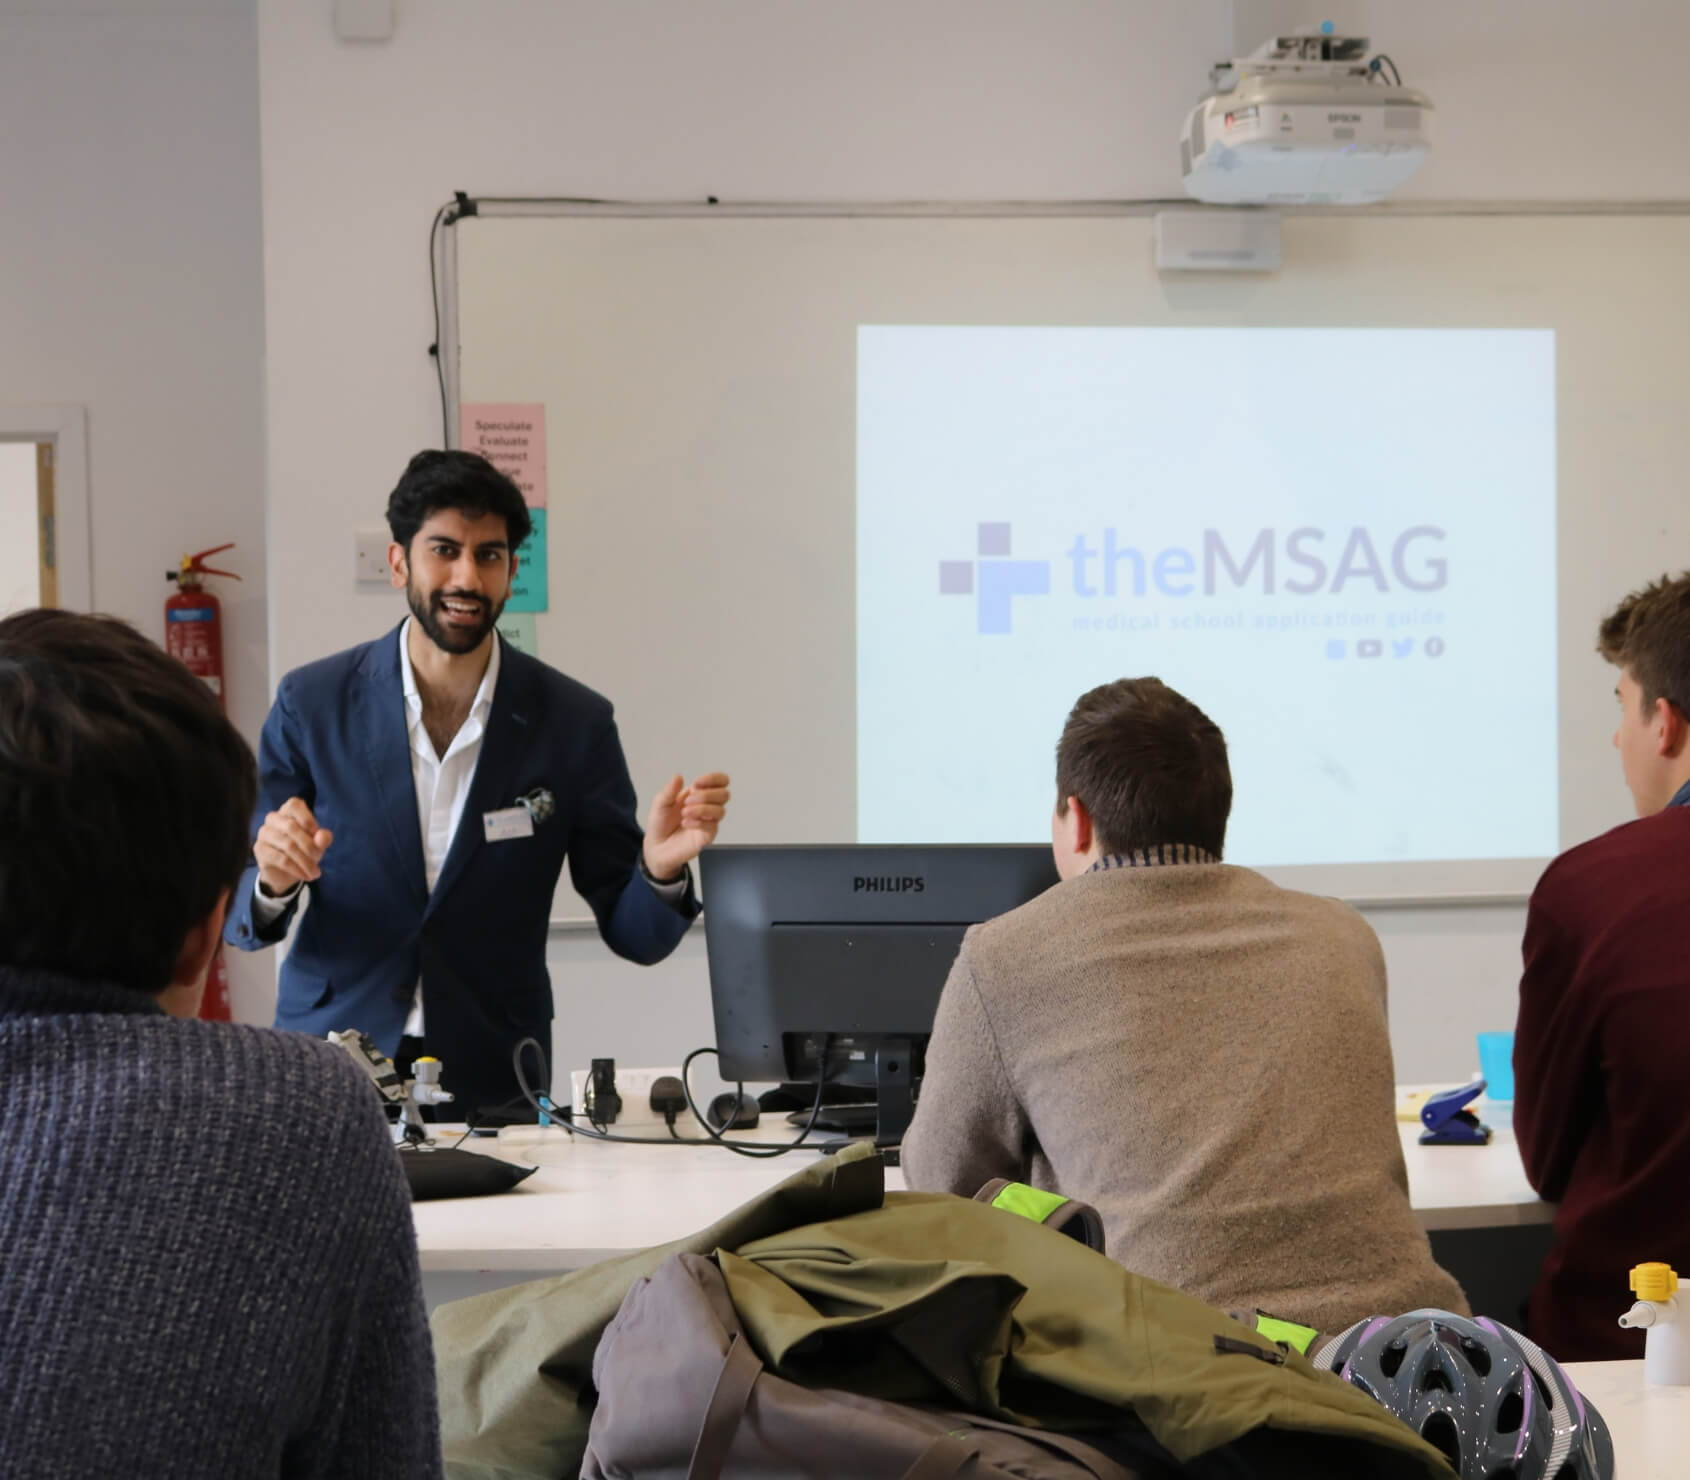 life-as-a-doctor-workshop-themsag